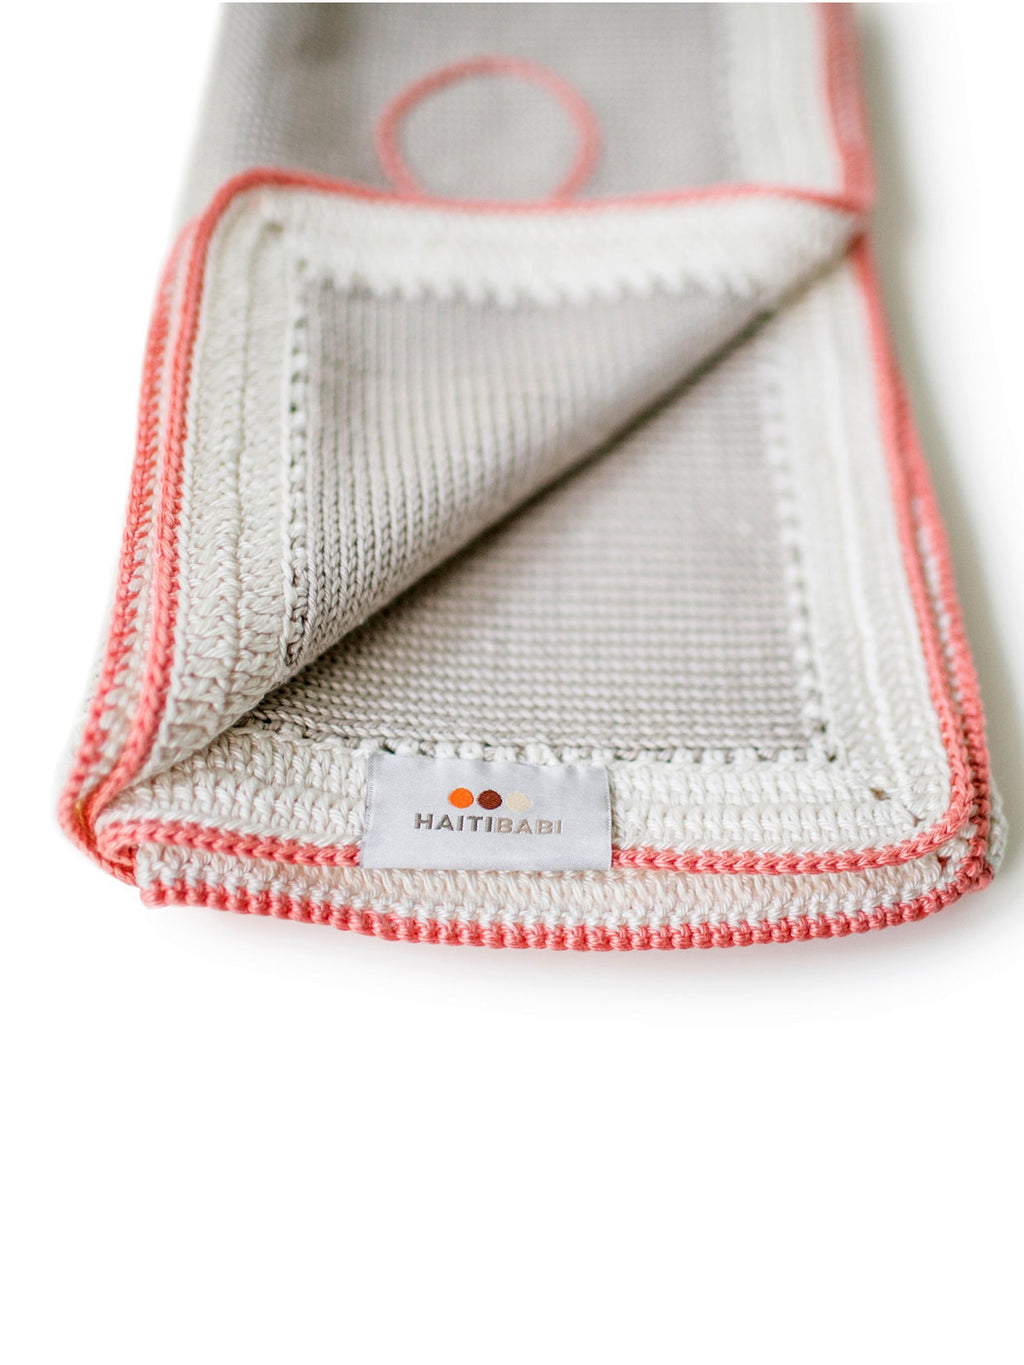 Hand-knit Pima Cotton Baby Blanket (taupe coral)